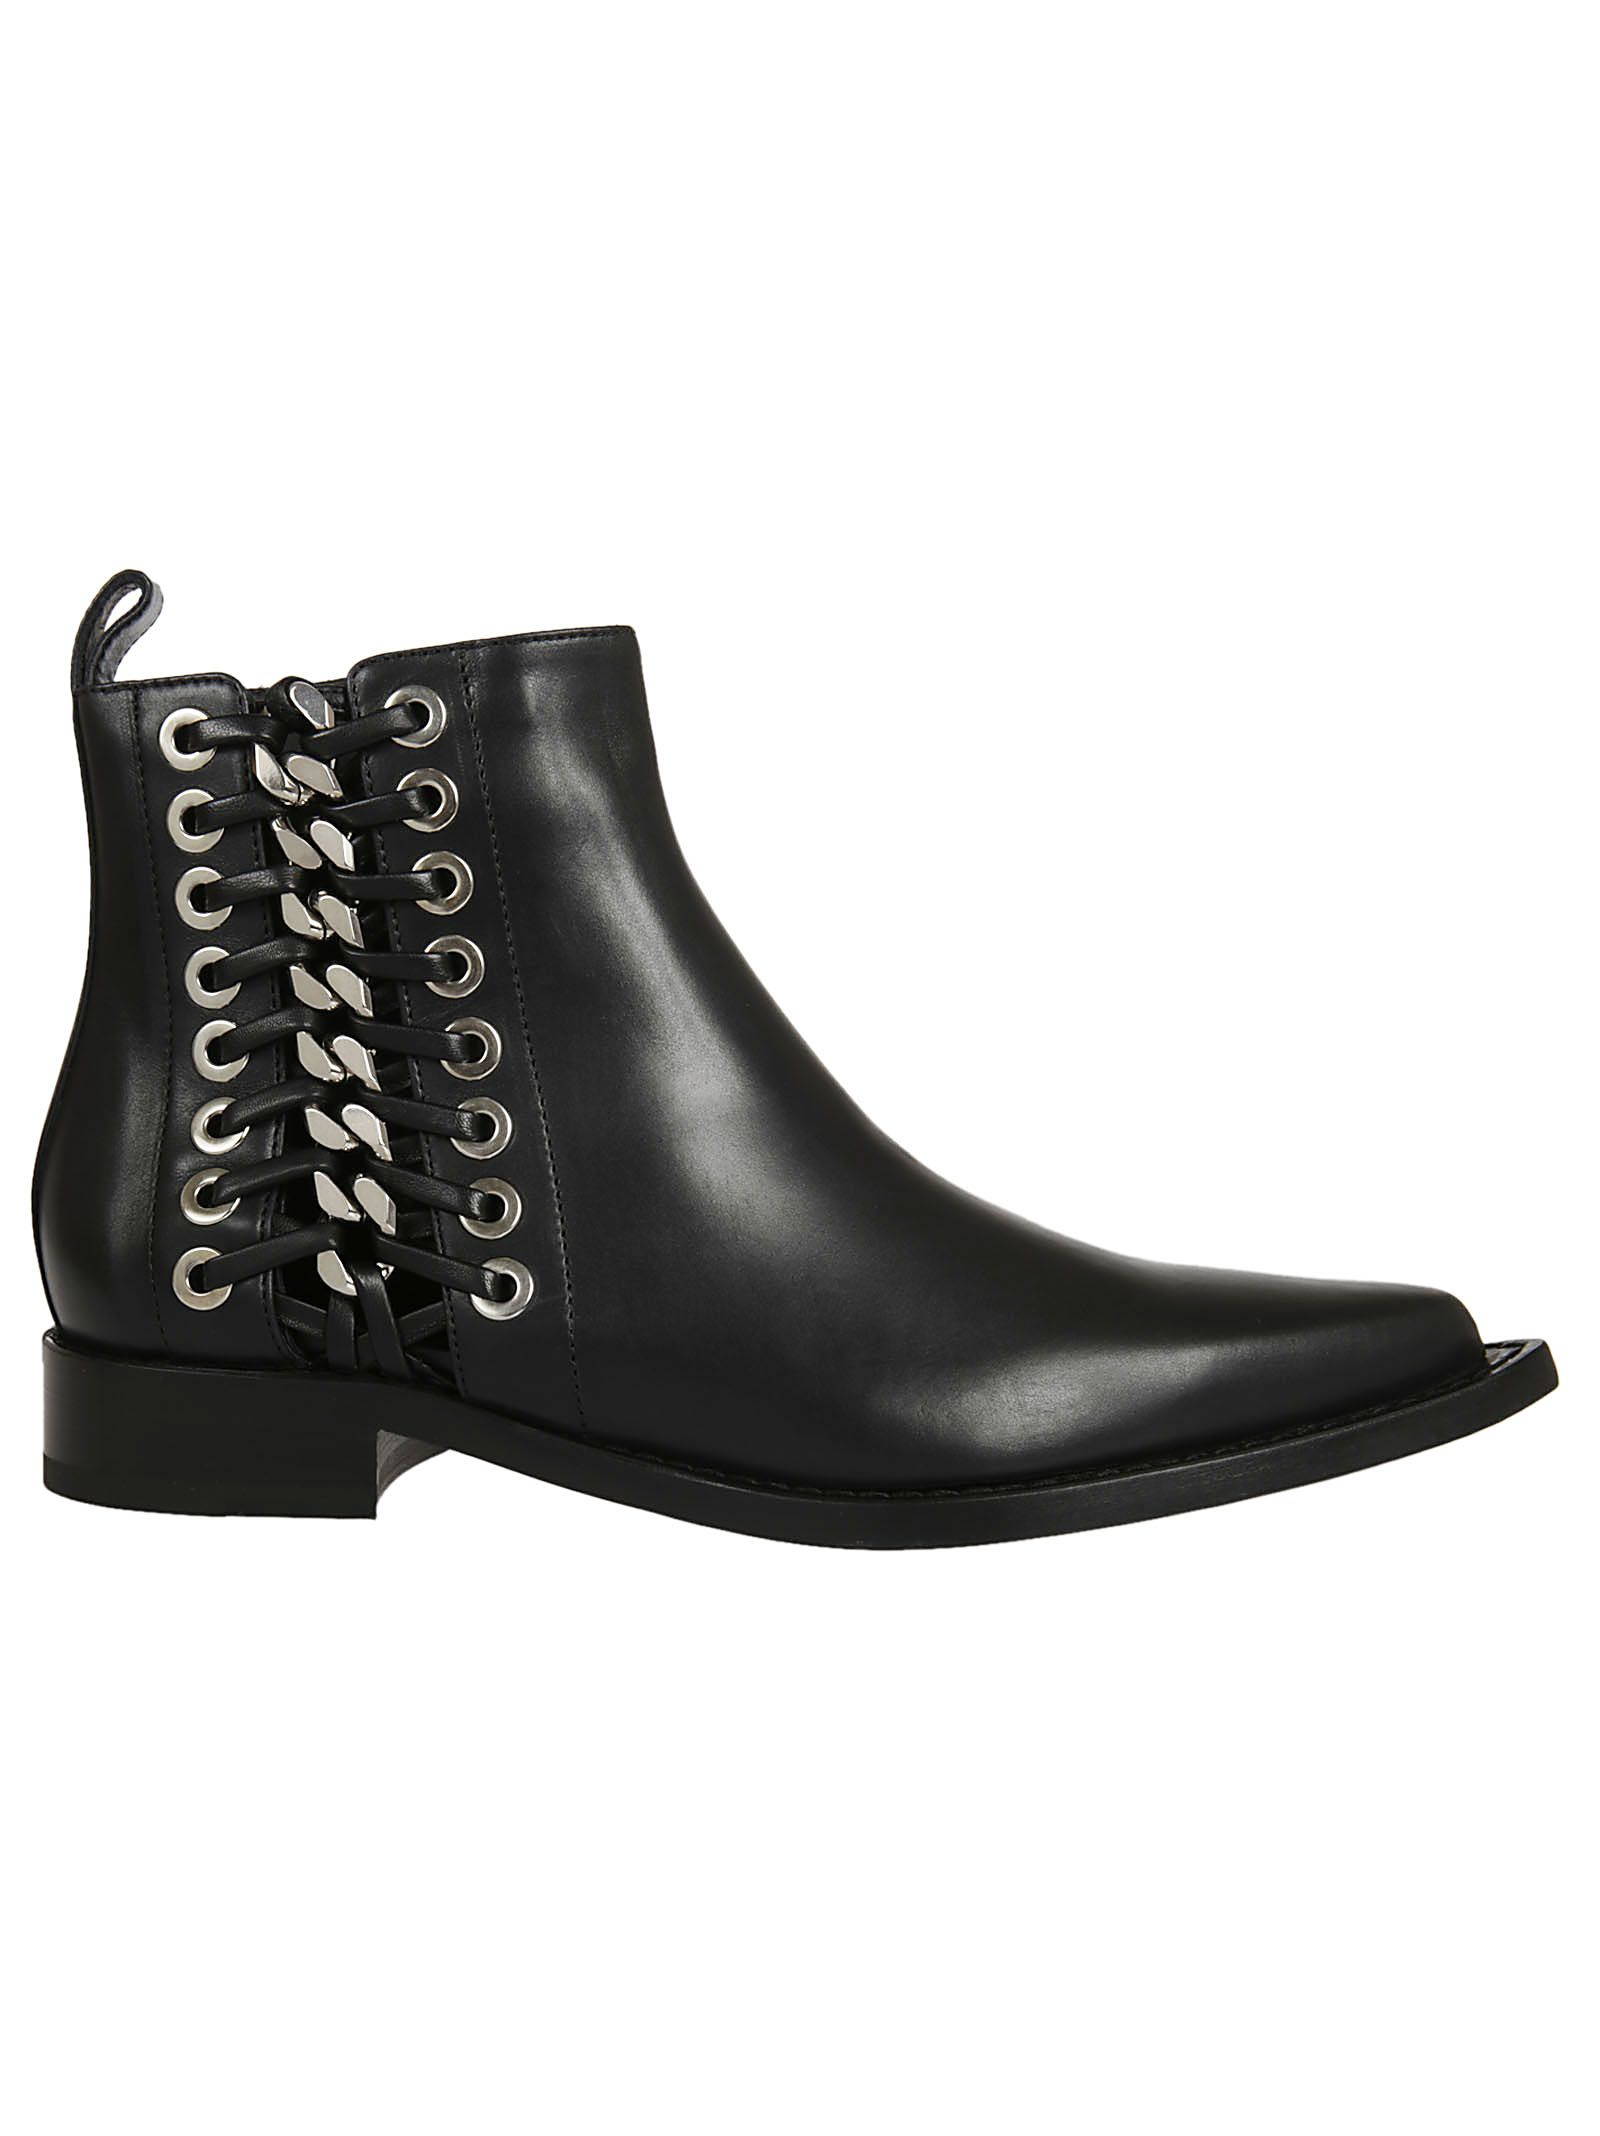 Alexander McQueen Mcq Lace Ankle Boots